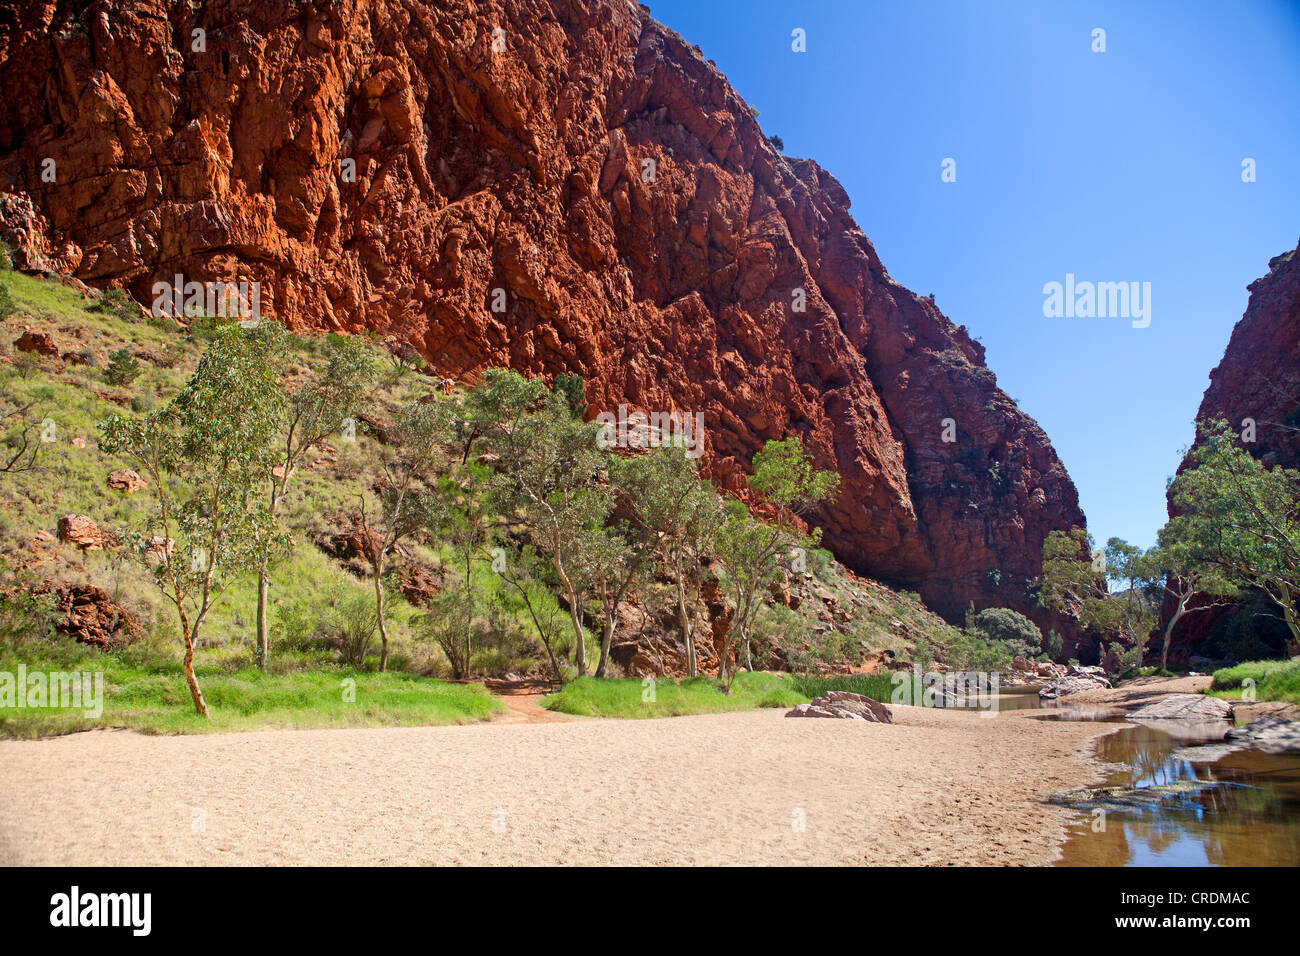 Simpsons Gap in the West MacDonnell Ranges - Stock Image